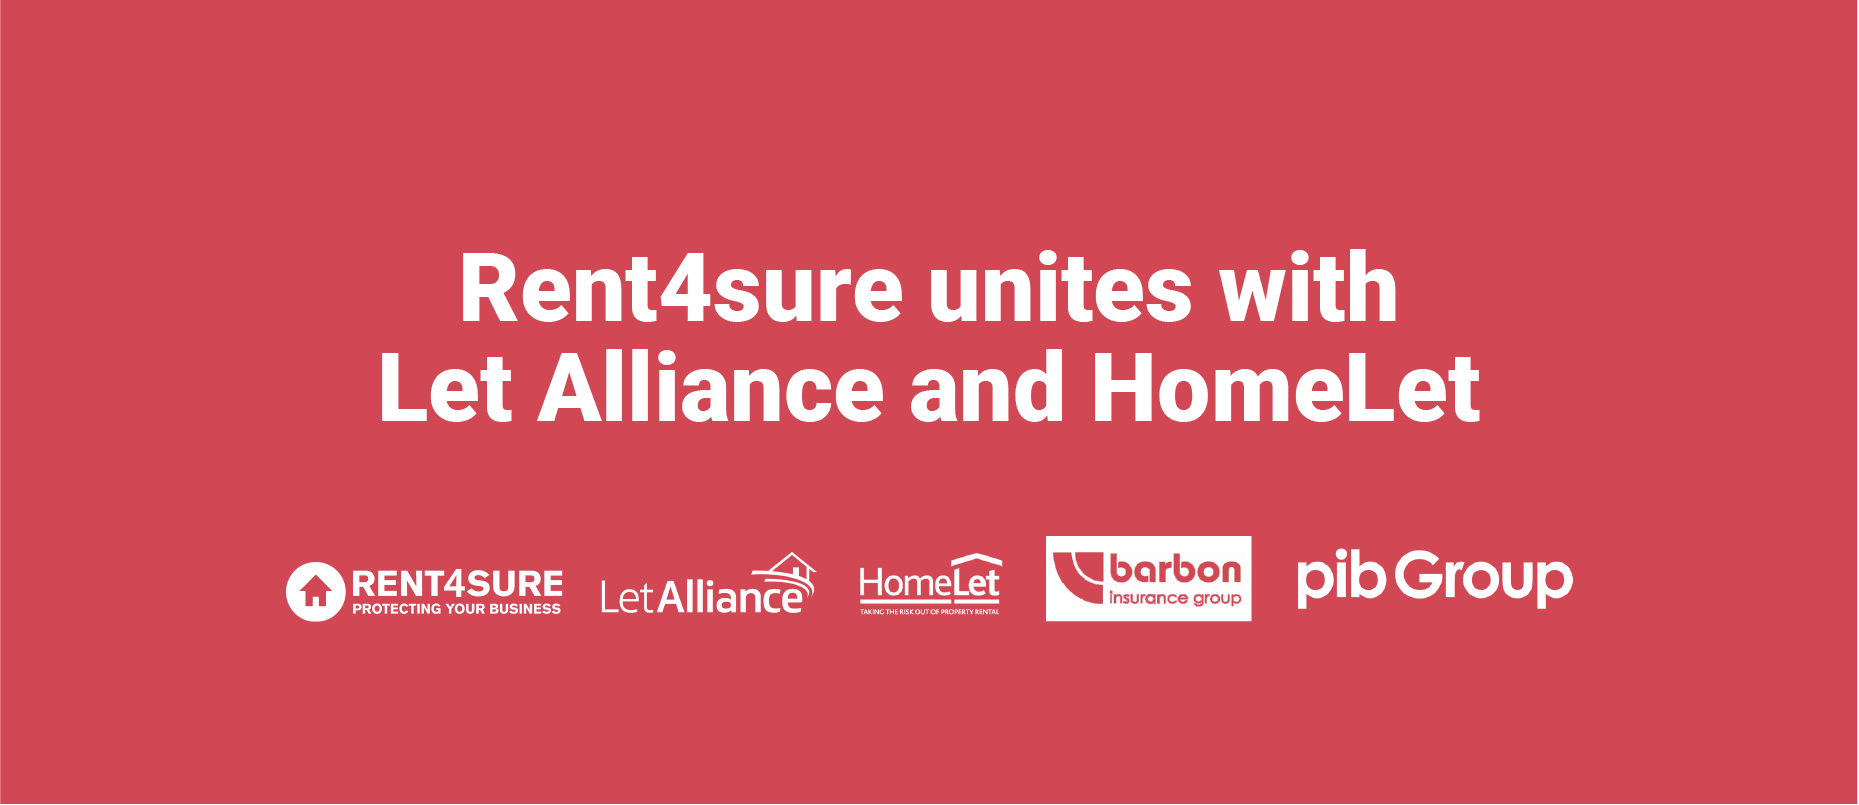 Rent4sure unites with Let Alliance and HomeLet